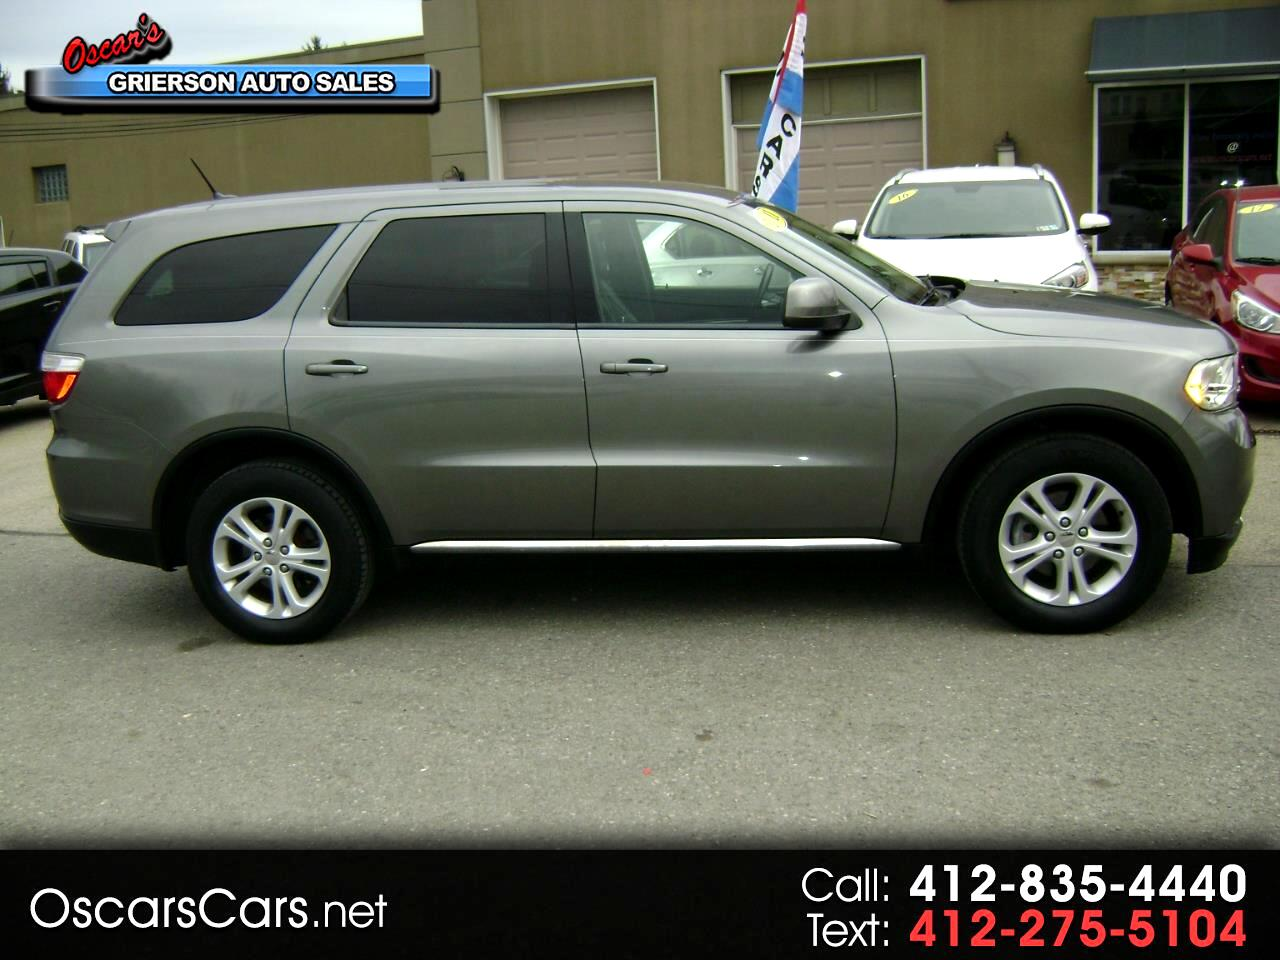 2011 Dodge Durango AWD 4dr Express